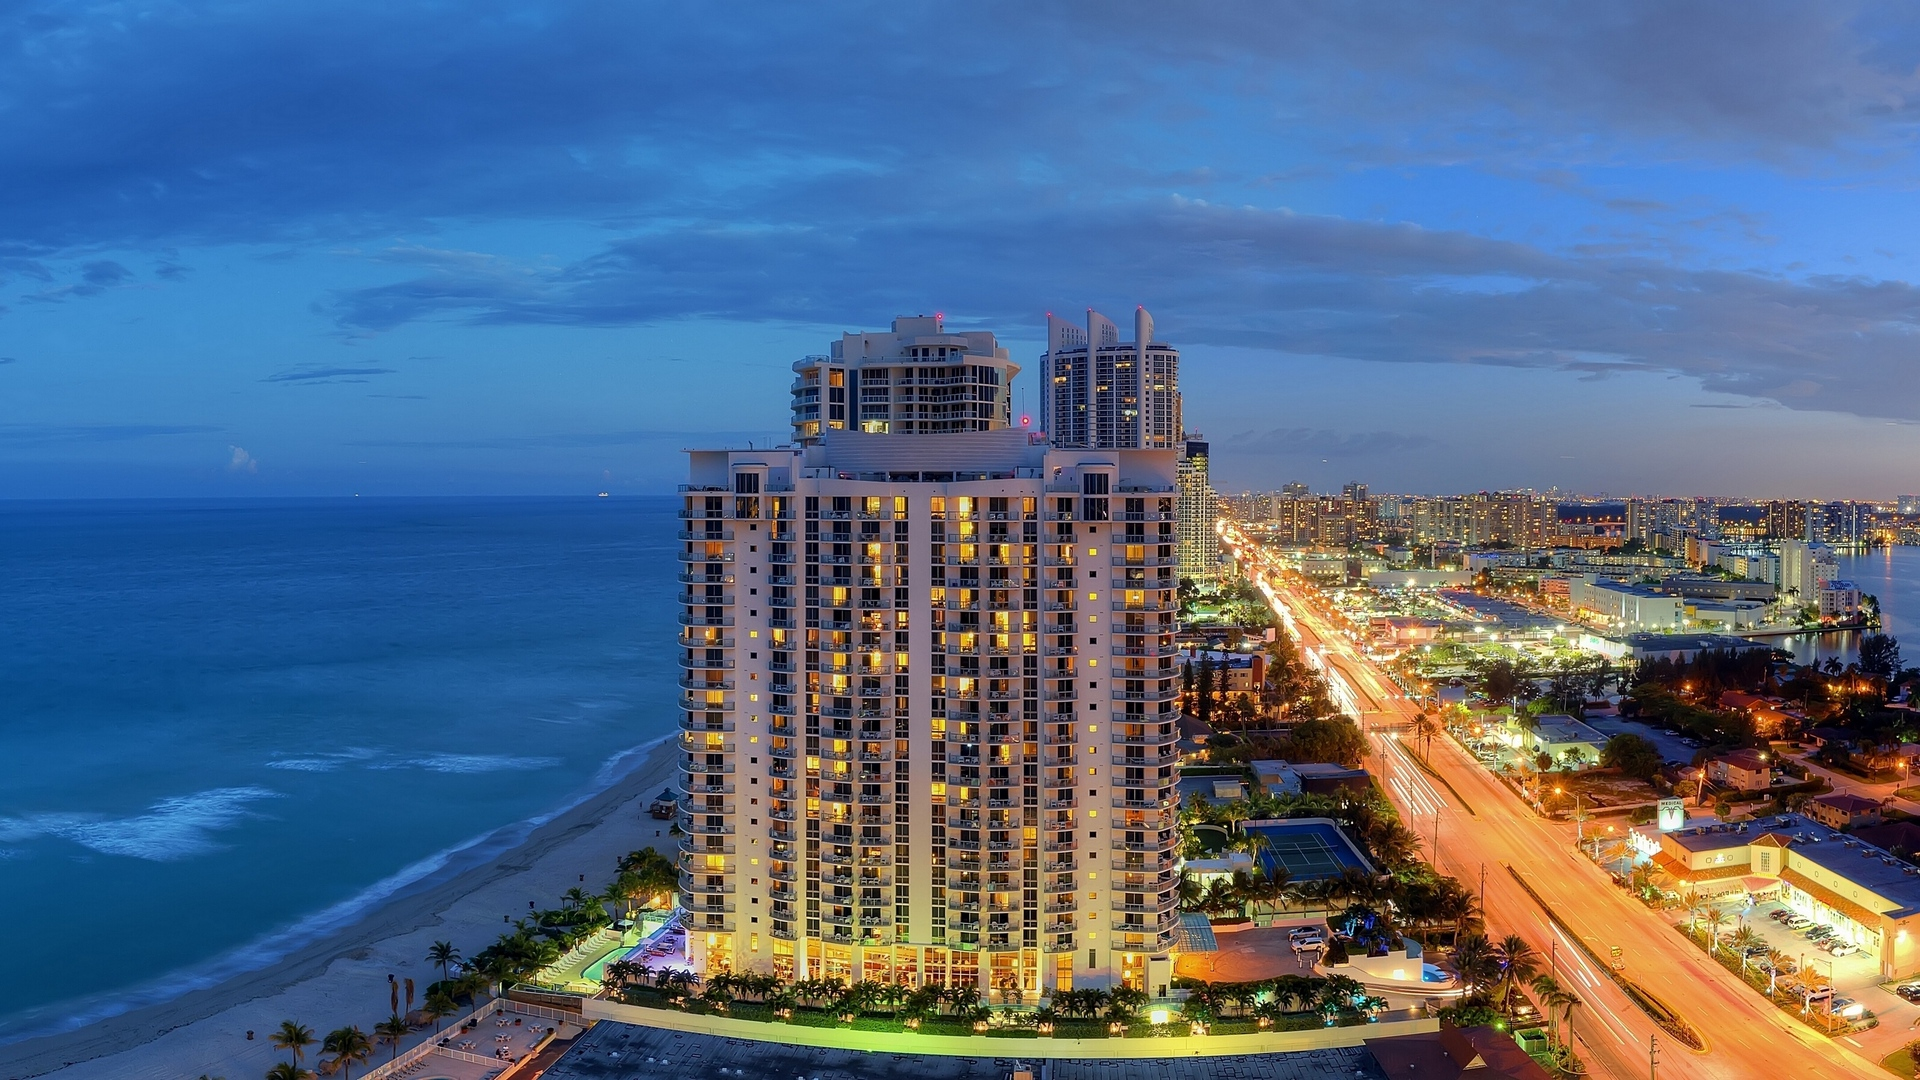 sunny isles beach miami florida panorama atlantic coast city nightlife x